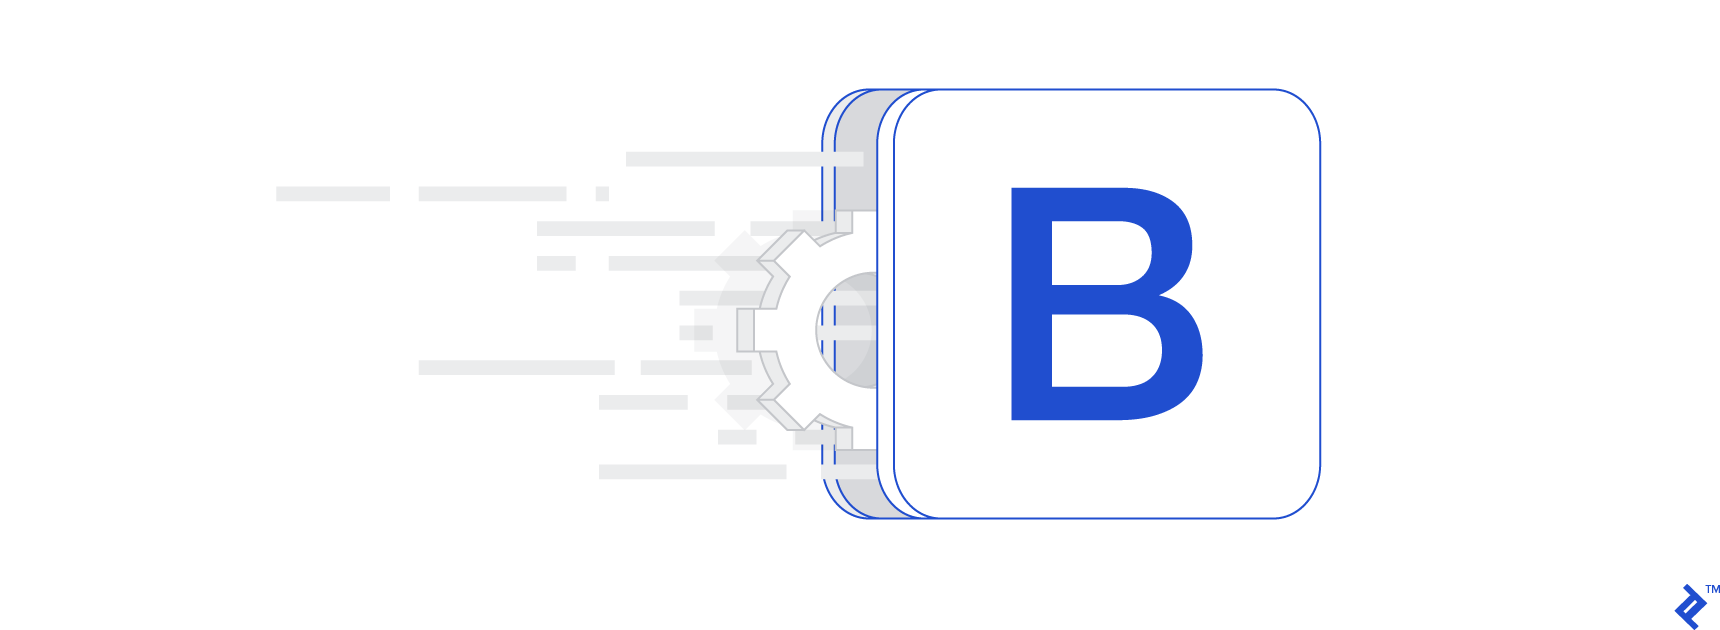 Learning more about Bootstrap components will help avoid bloating your stylesheets